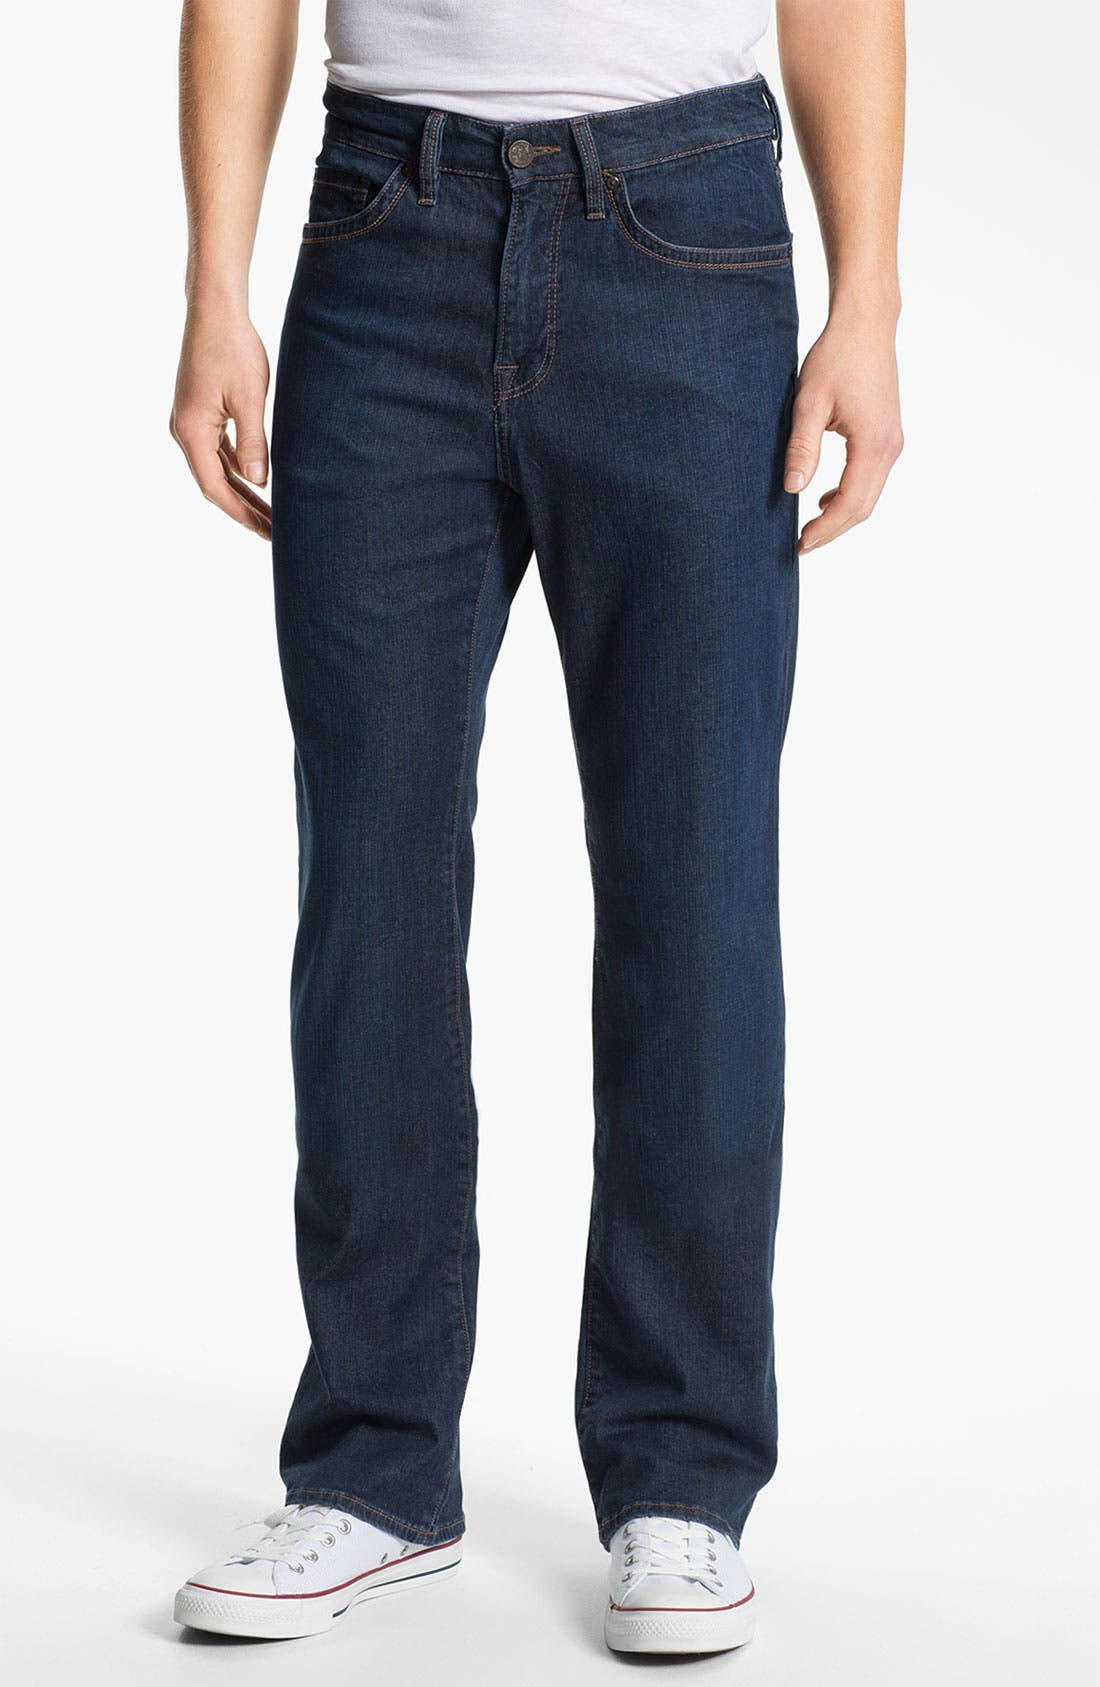 Alternate Image 1 Selected - 34 Heritage 'Charisma' Classic Relaxed Fit Jeans (Dark Cashmere) (Online Only) (Regular & Tall)